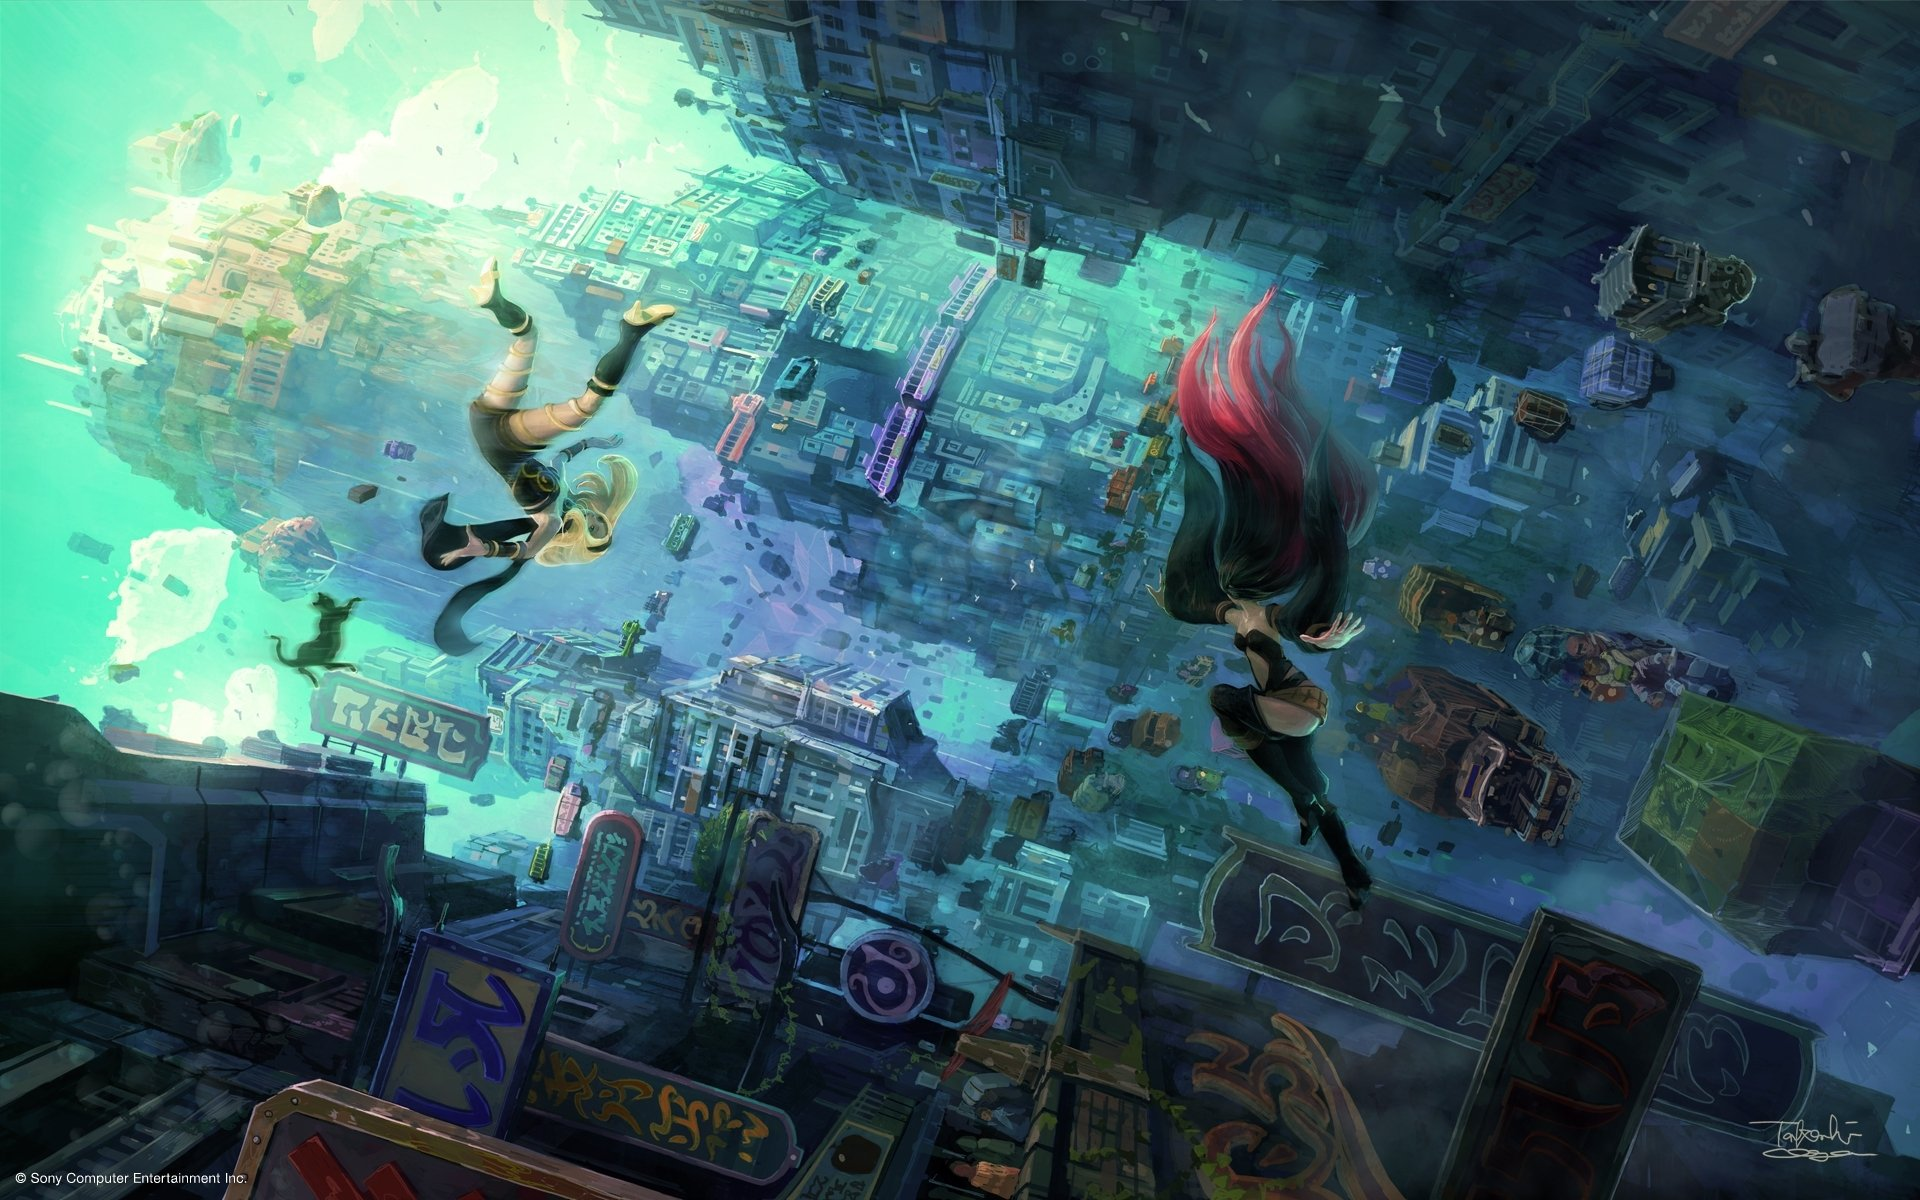 Gravity Falls Hd Wallpaper Gravity Rush 2 Full Hd Wallpaper And Background Image